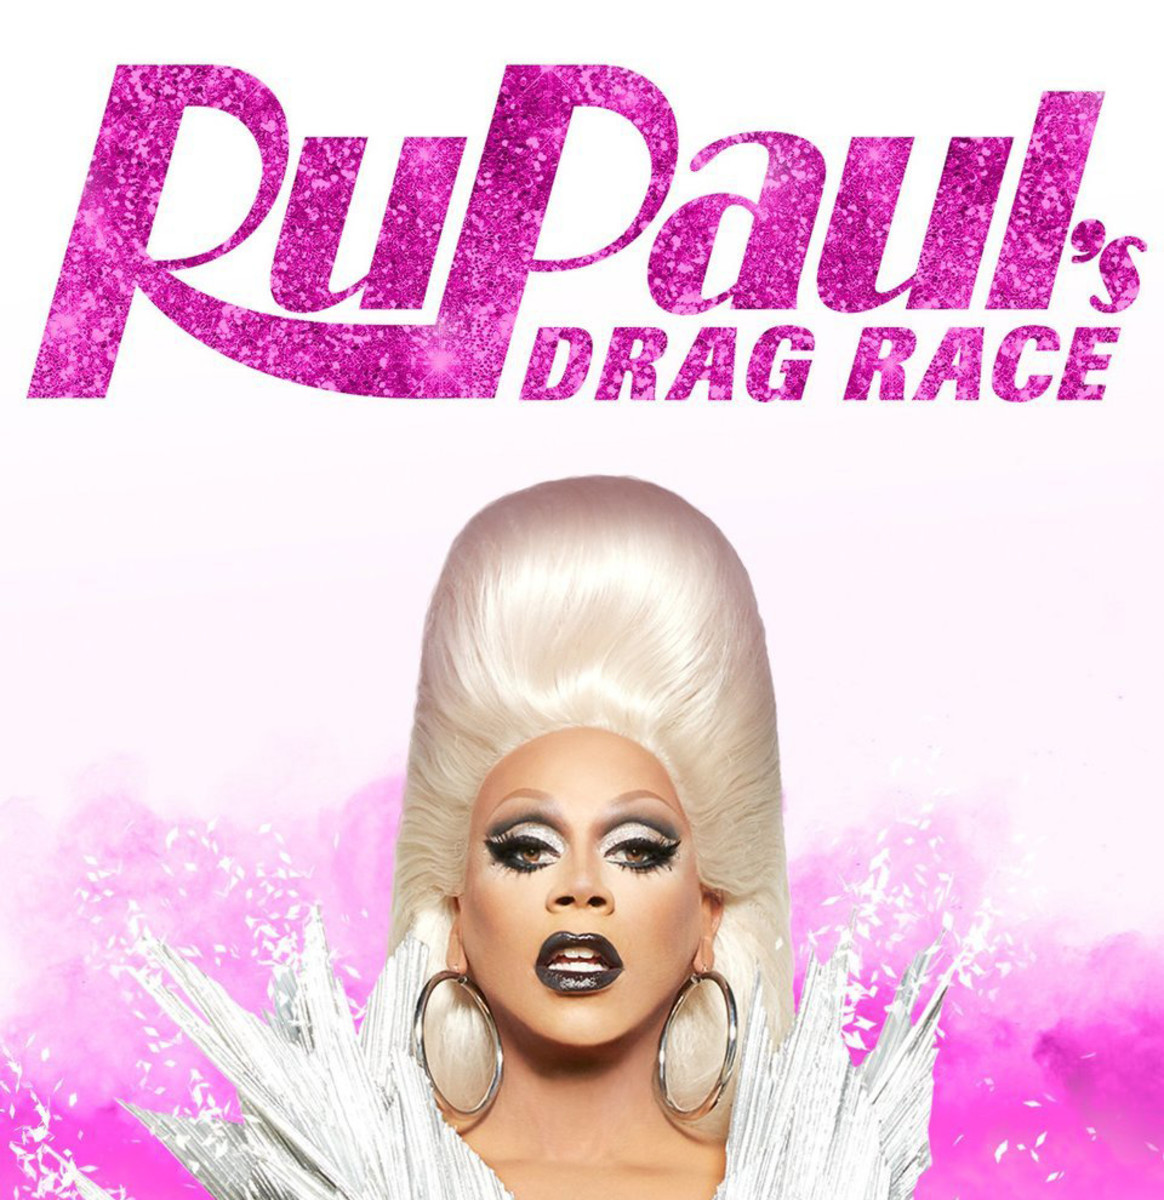 The Best RuPaul's Drag Race Quote